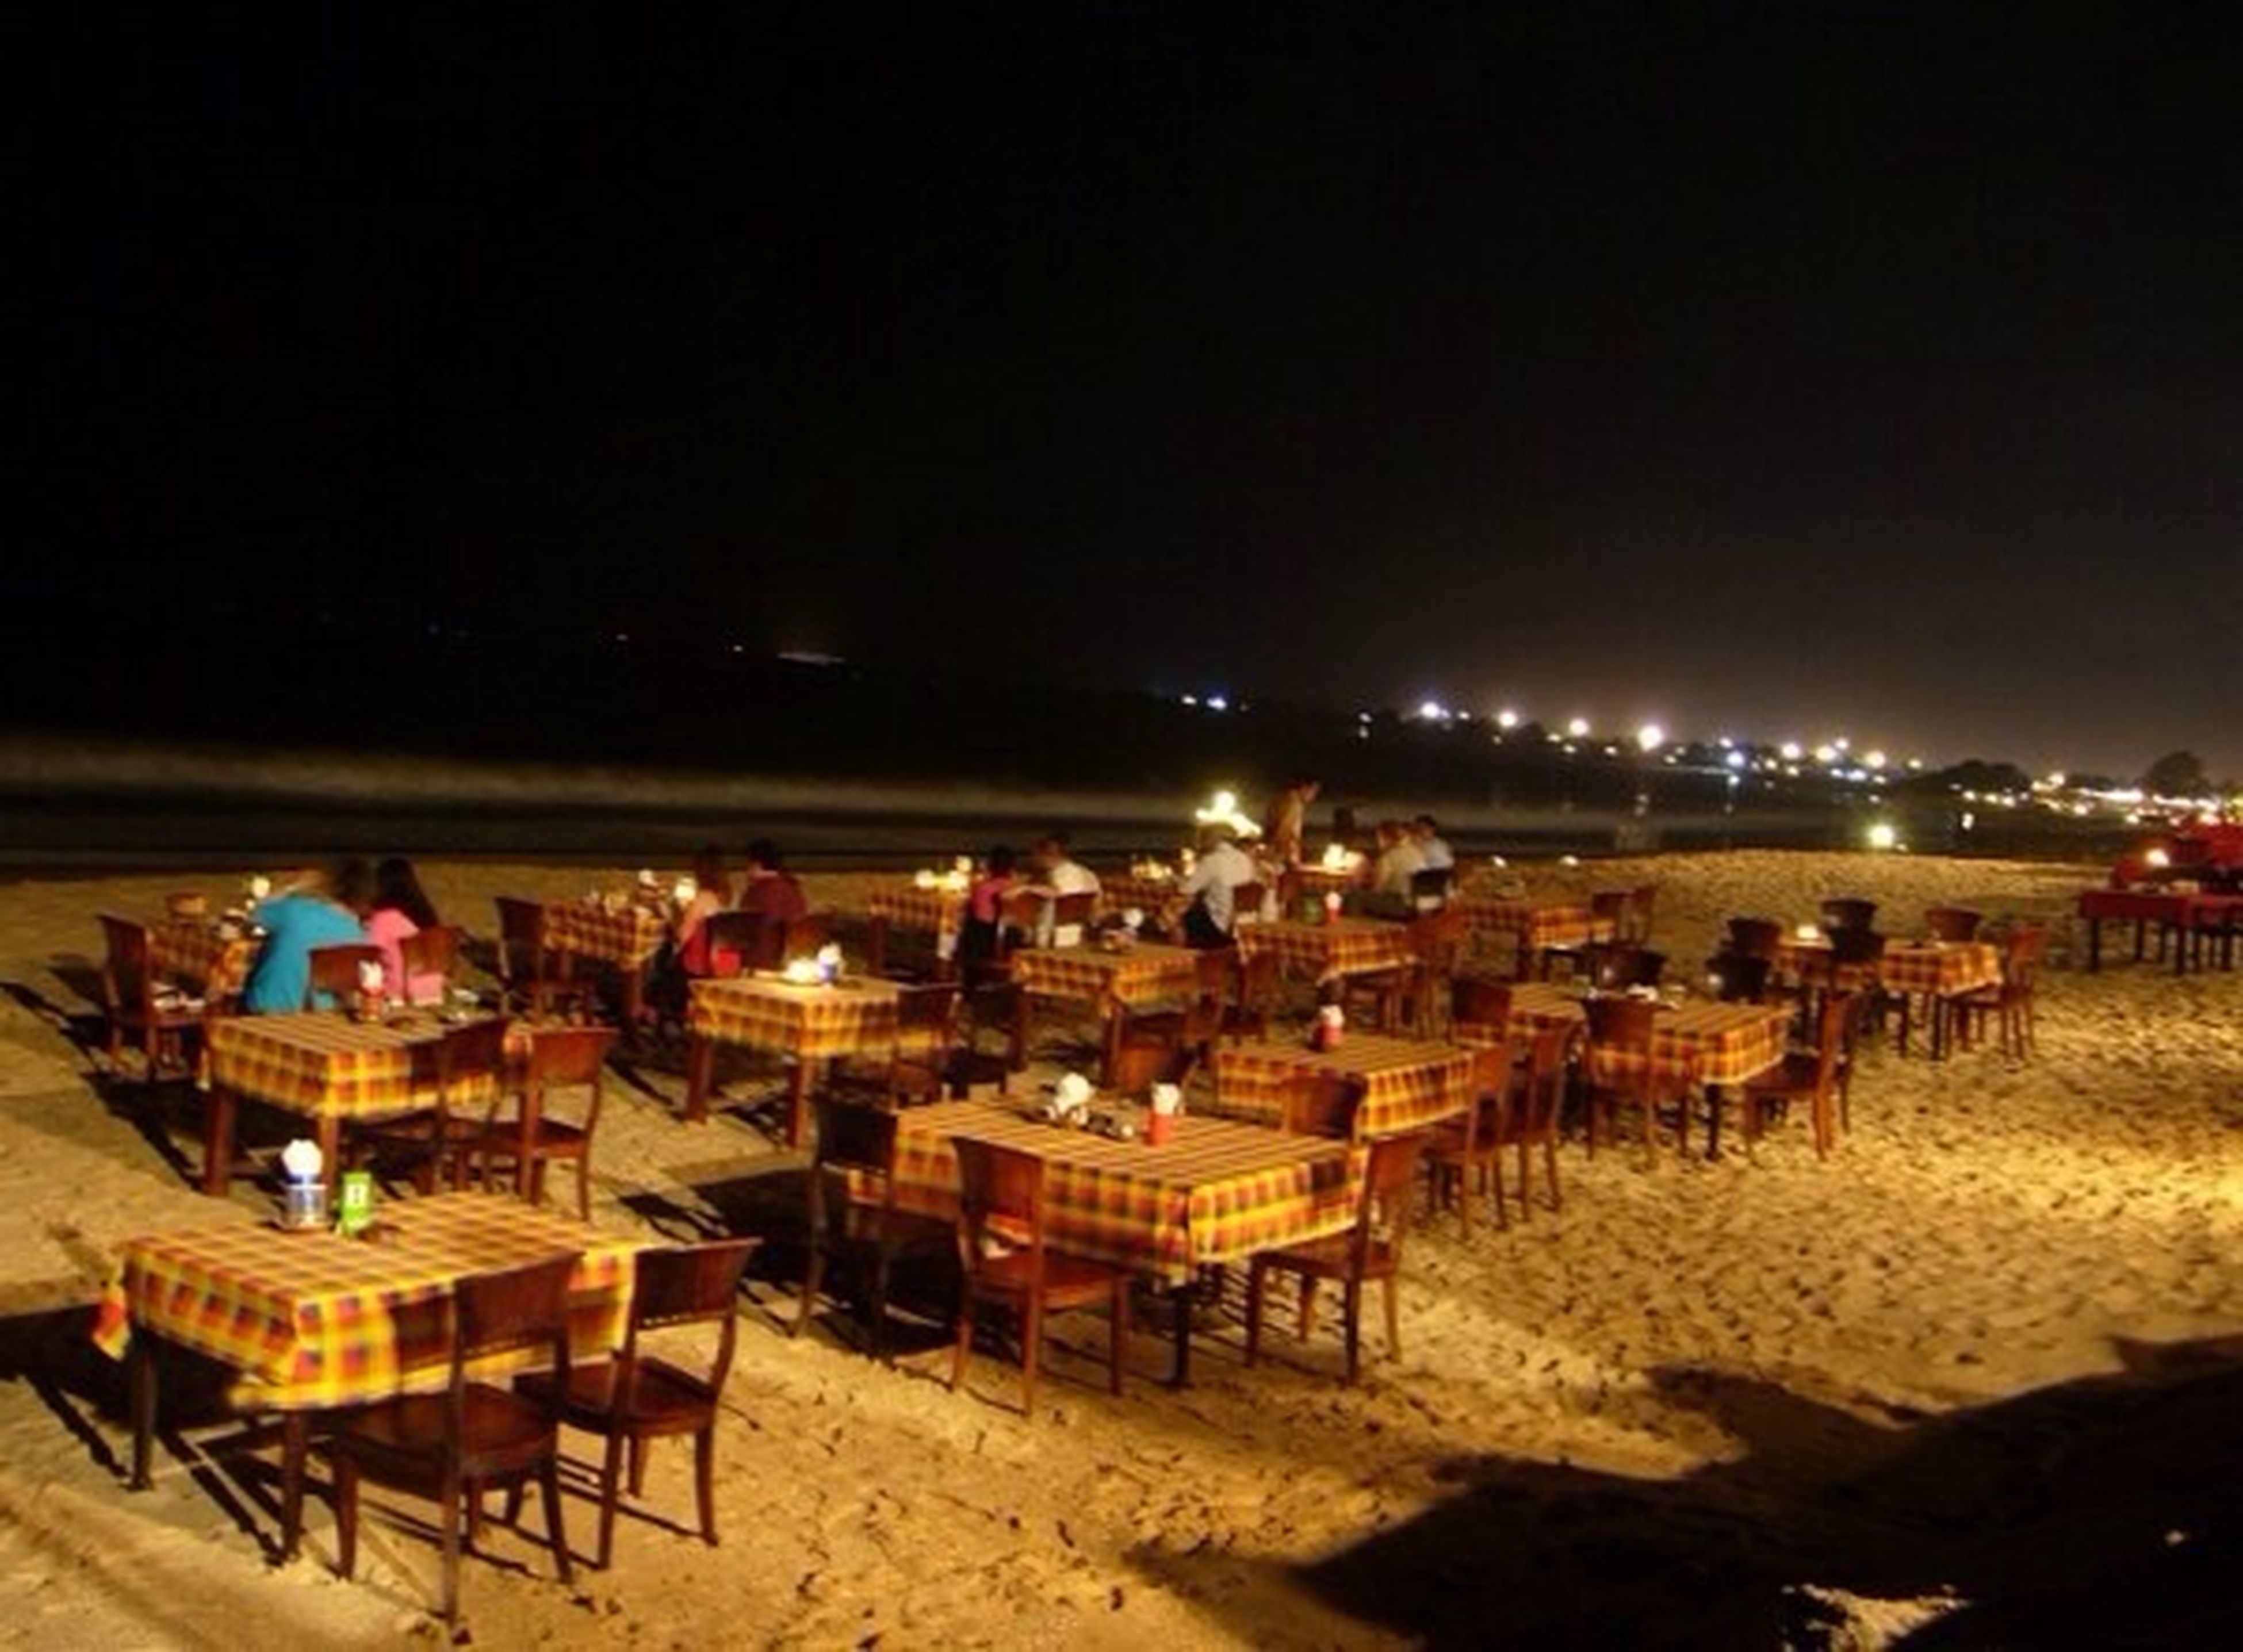 beach, sand, night, illuminated, chair, shore, copy space, clear sky, absence, sea, built structure, outdoors, relaxation, building exterior, empty, architecture, incidental people, tranquility, seat, nature